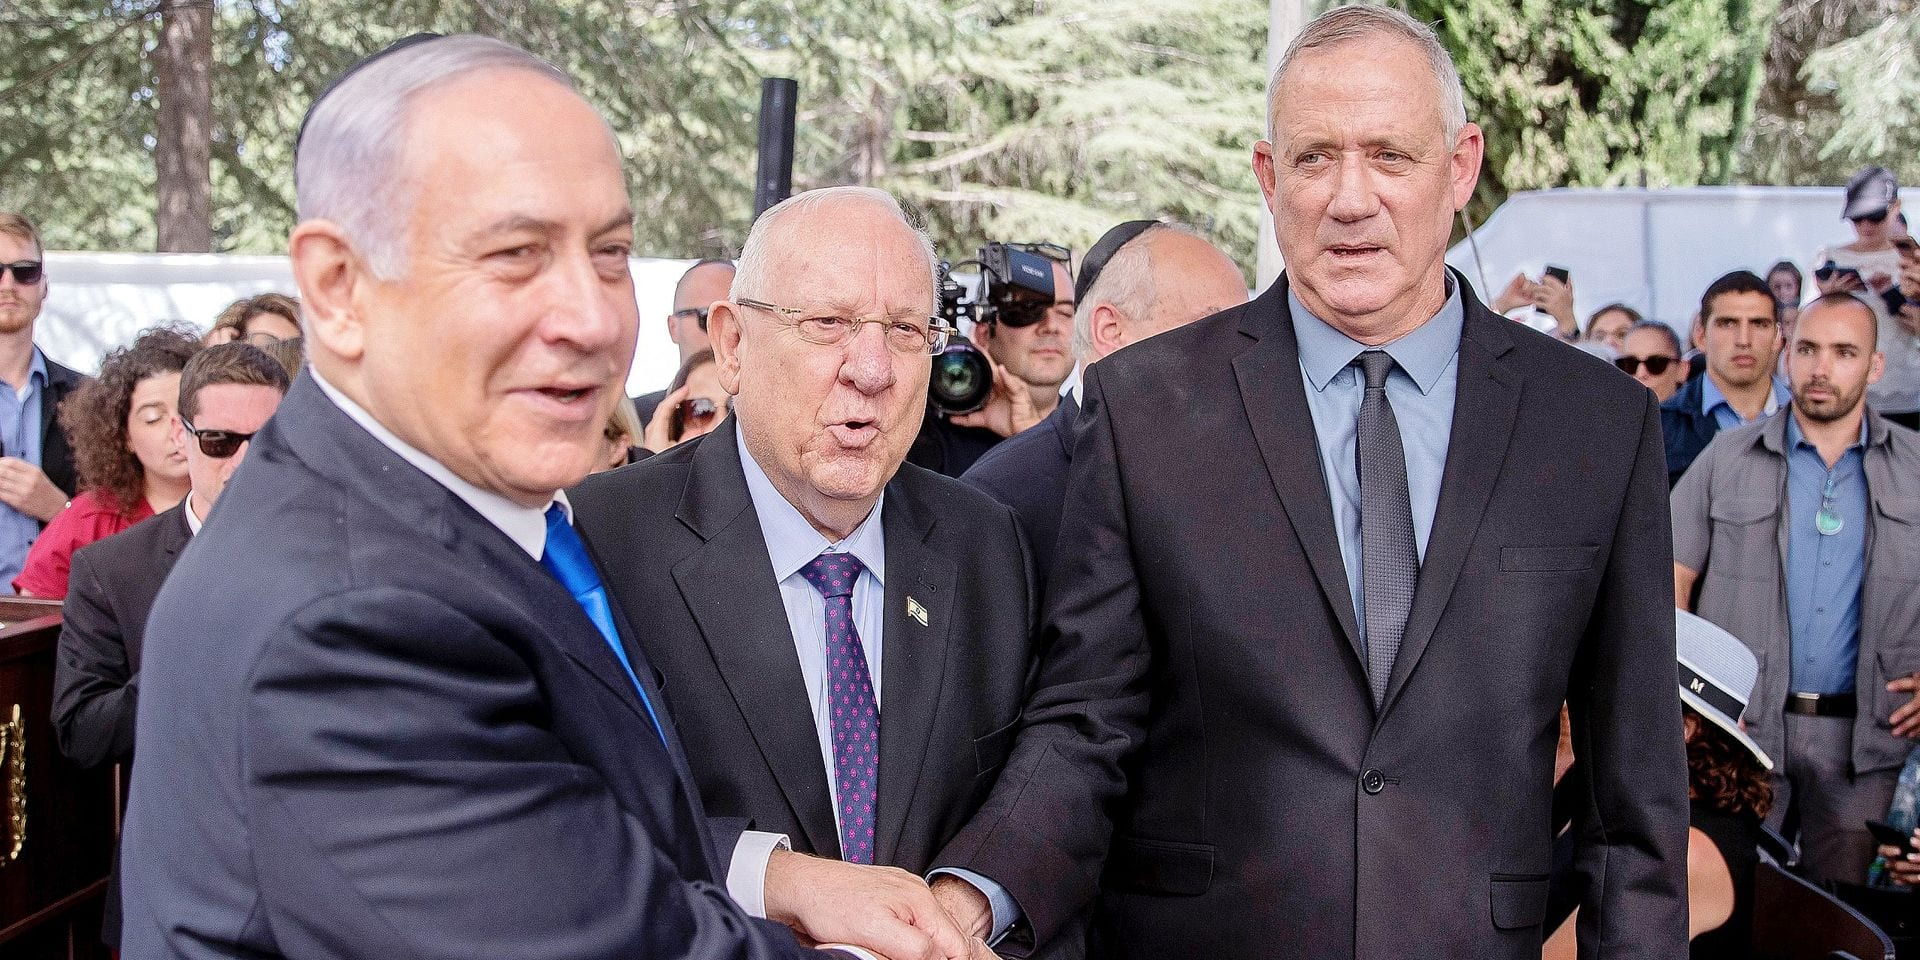 Israeli Prime Minister Benjamin Netanyahu (L), President Reuven Rivlin (C) and Benny Gantz, leader of Blue and White party, attend a memorial ceremony for late Israeli president Shimon Peres, at Mount Herzl in Jerusalem on September 19, 2019. - Netanyahu called on his main challenger Benny Gantz on Thursday to form a unity government together as election results showed both without an obvious path to a majority coalition. (Photo by YONATAN SINDEL / AFP) / Israel OUT